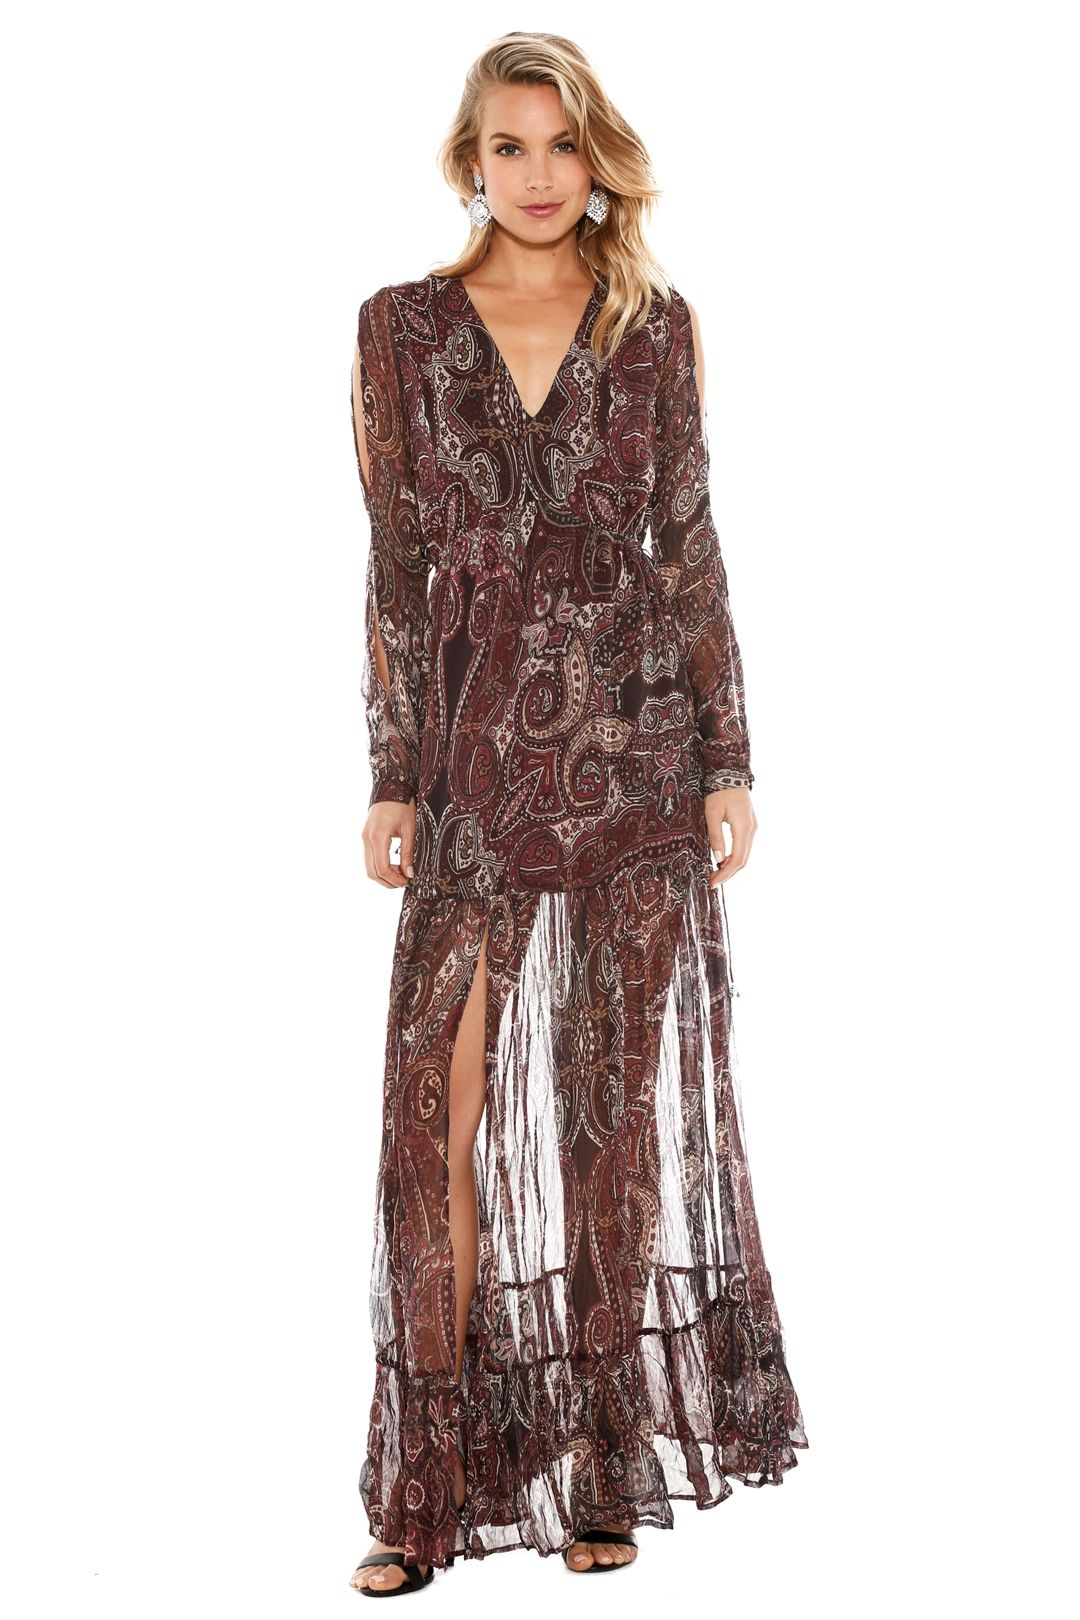 The Jetset Diaries - Labyrinth Paisley Maxi Dress - Burgundy - Front